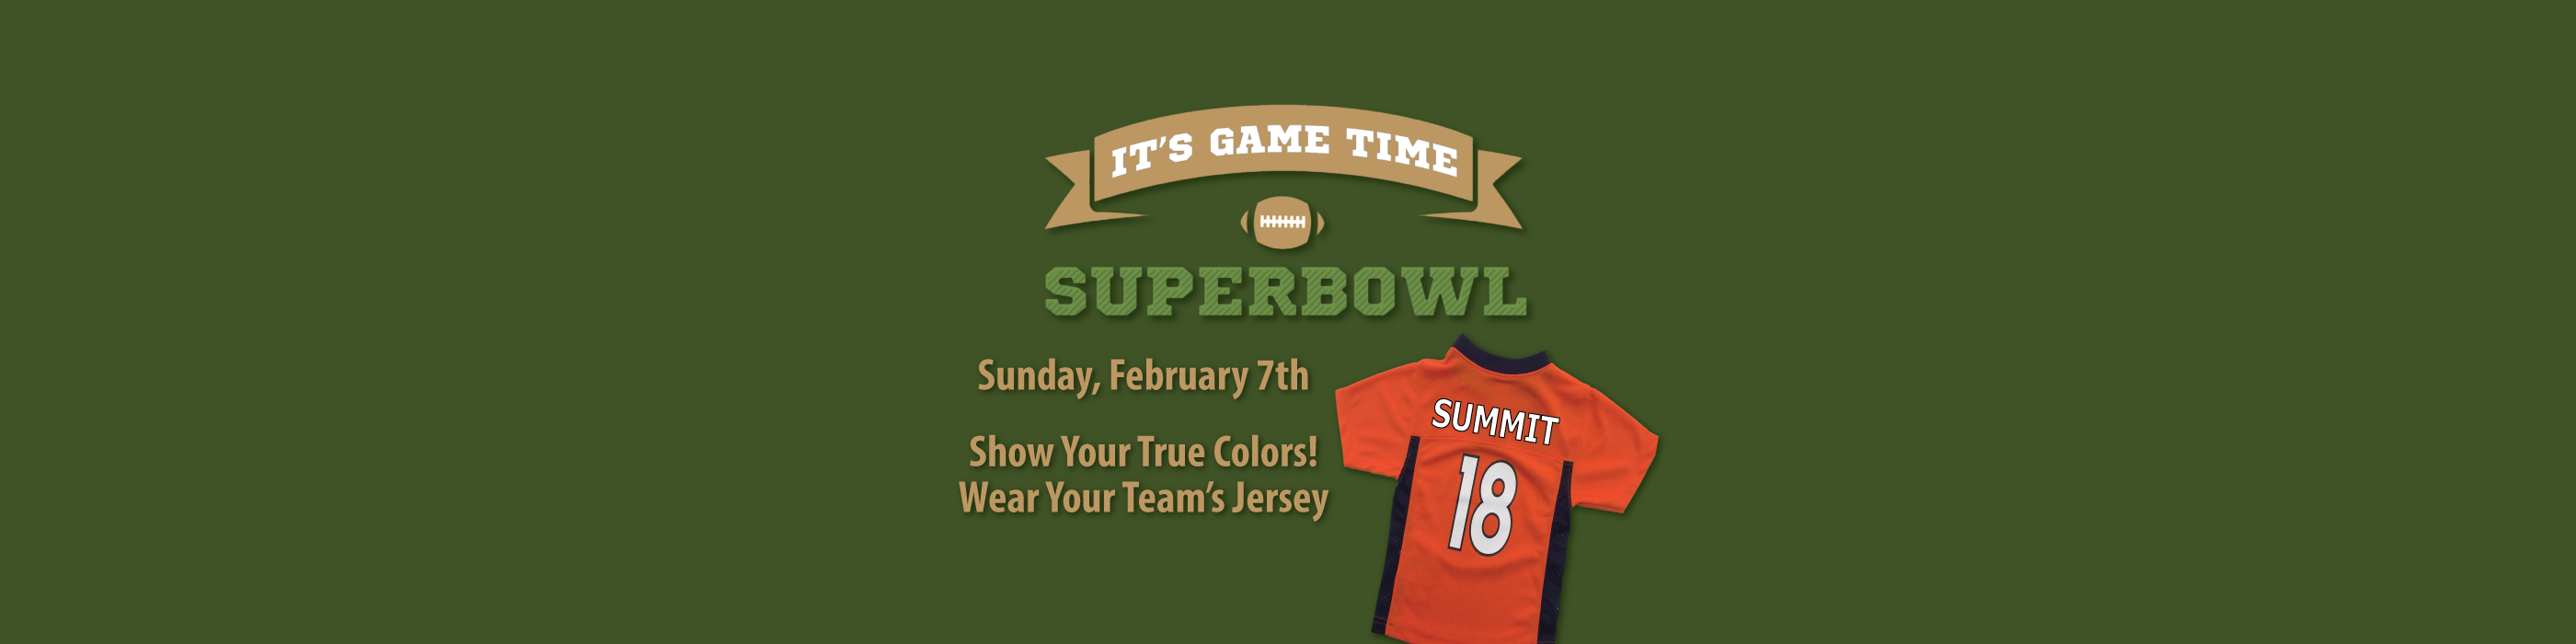 Summit-Super-Bowl-Sunday-020716-Final_web_2800x700